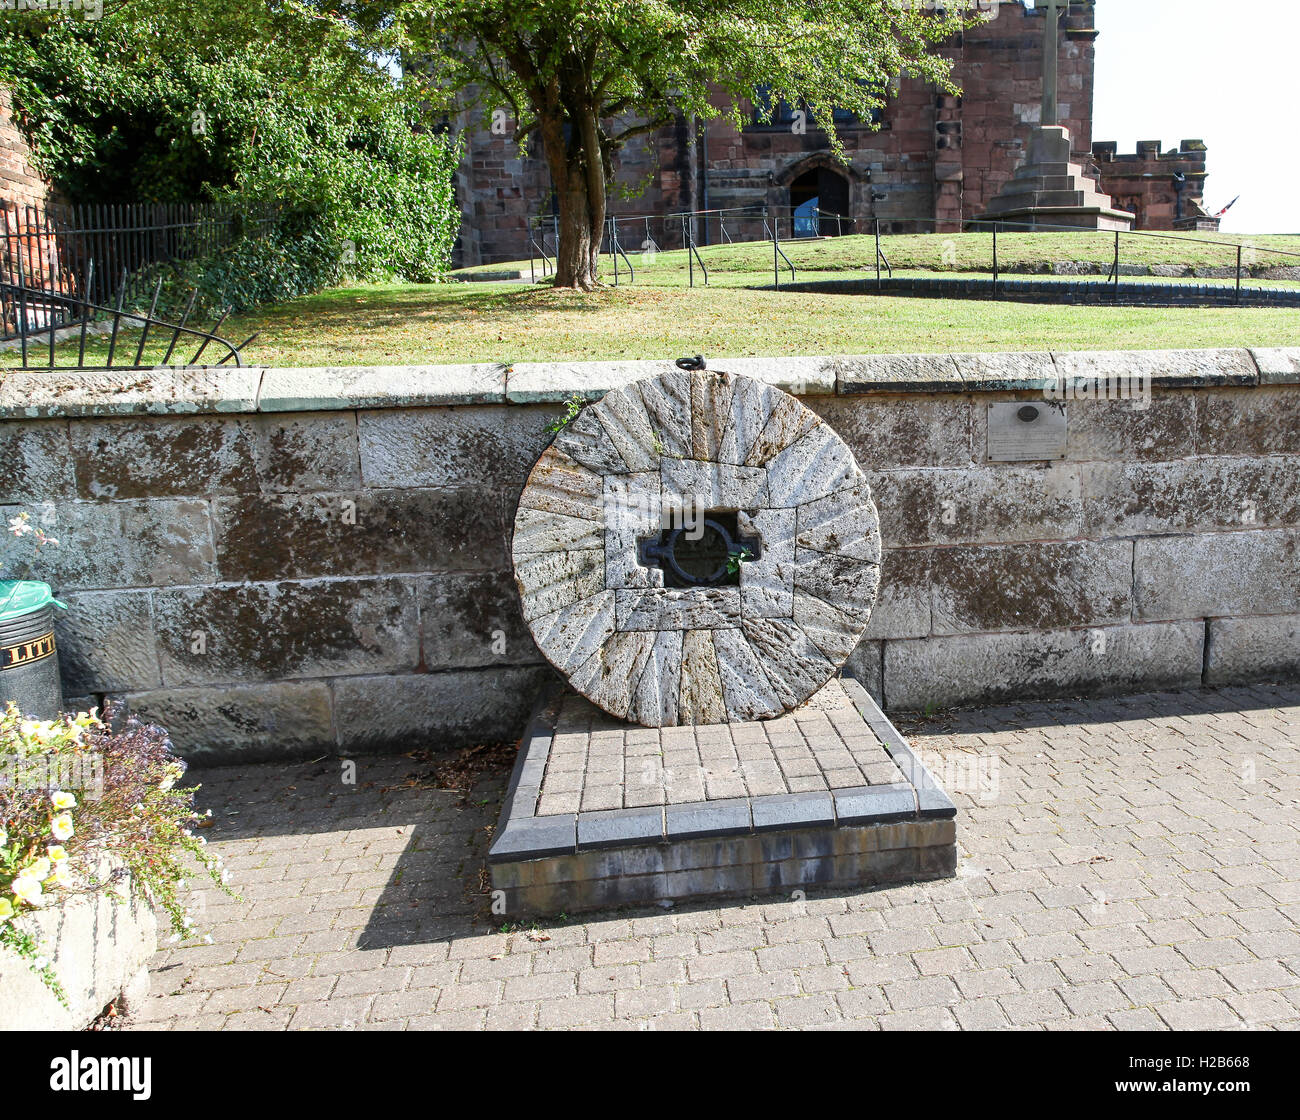 A mill stone in the street in the village of Audlem Cheshire England UK - Stock Image